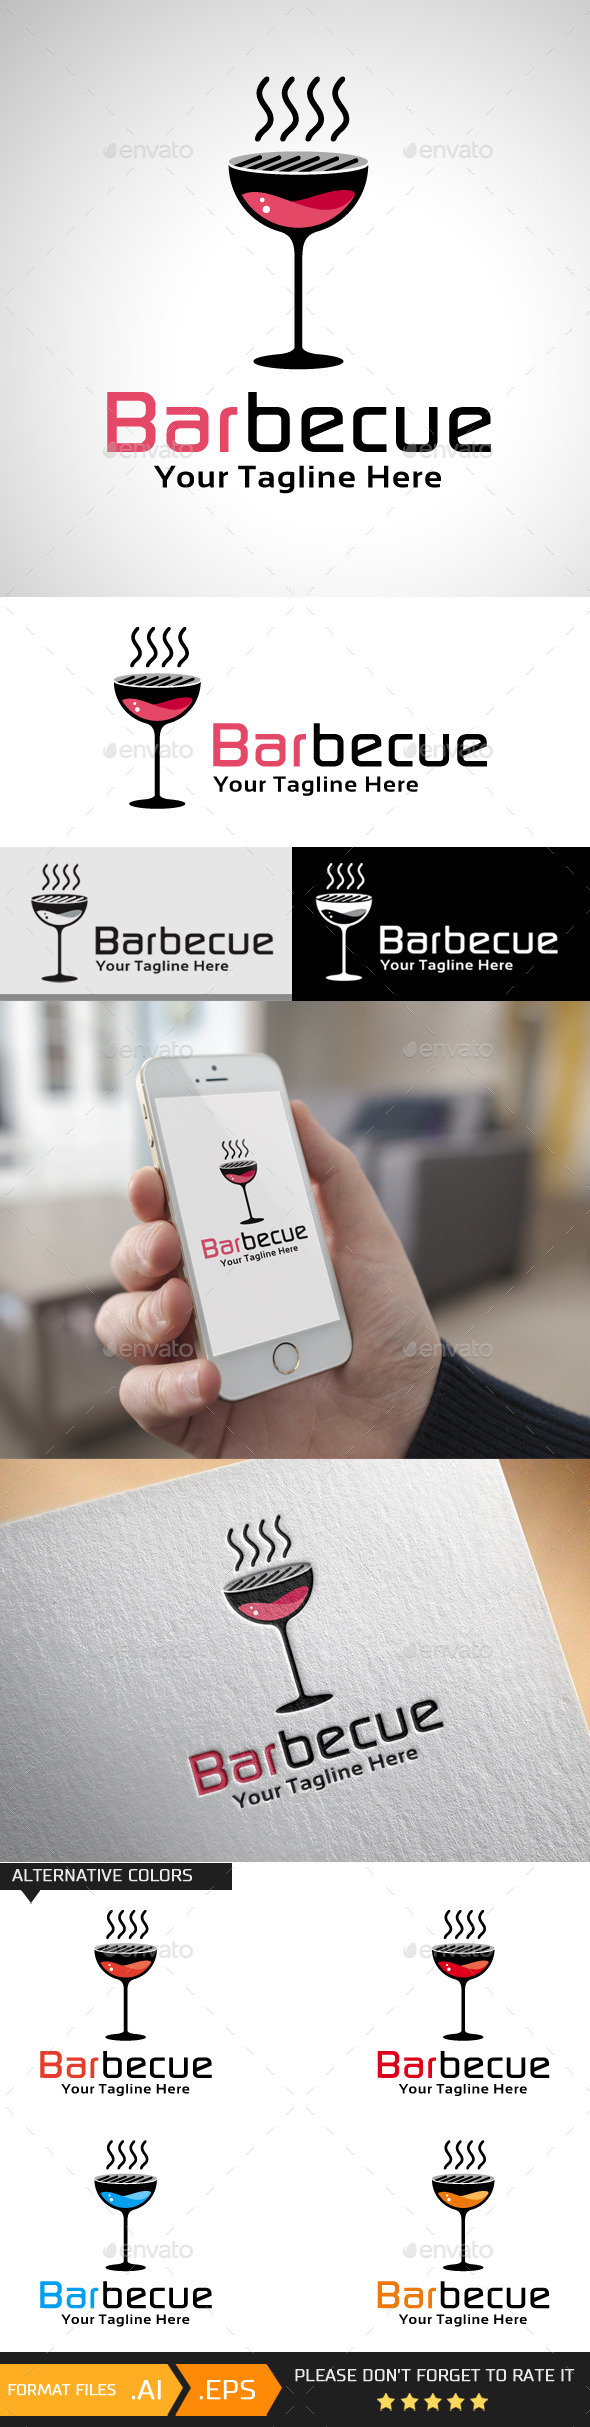 Barbecue Logo Template - Objects Logo Templates